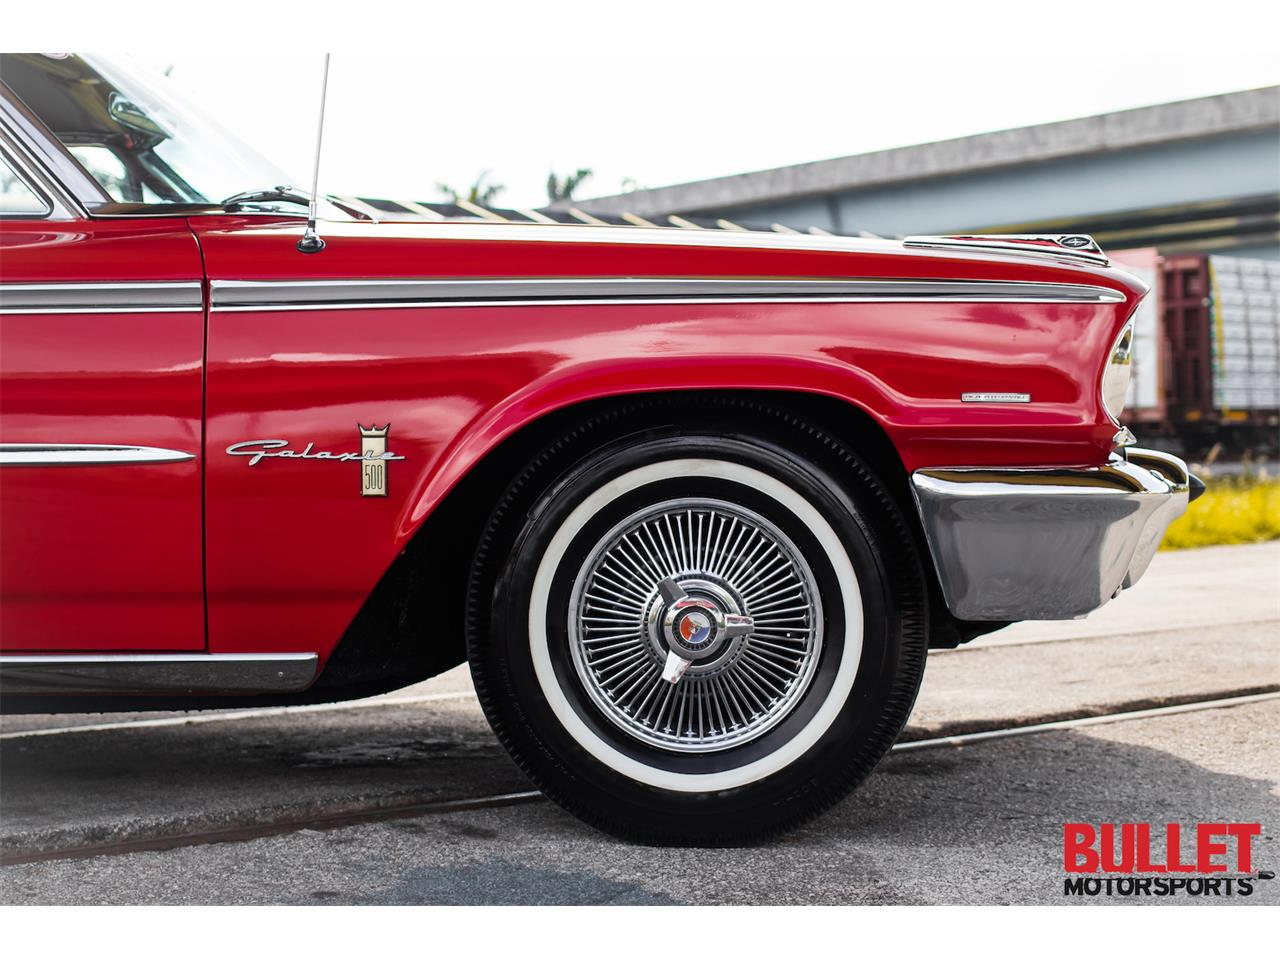 Large Picture of Classic '63 Ford Galaxie - $17,950.00 - M69S